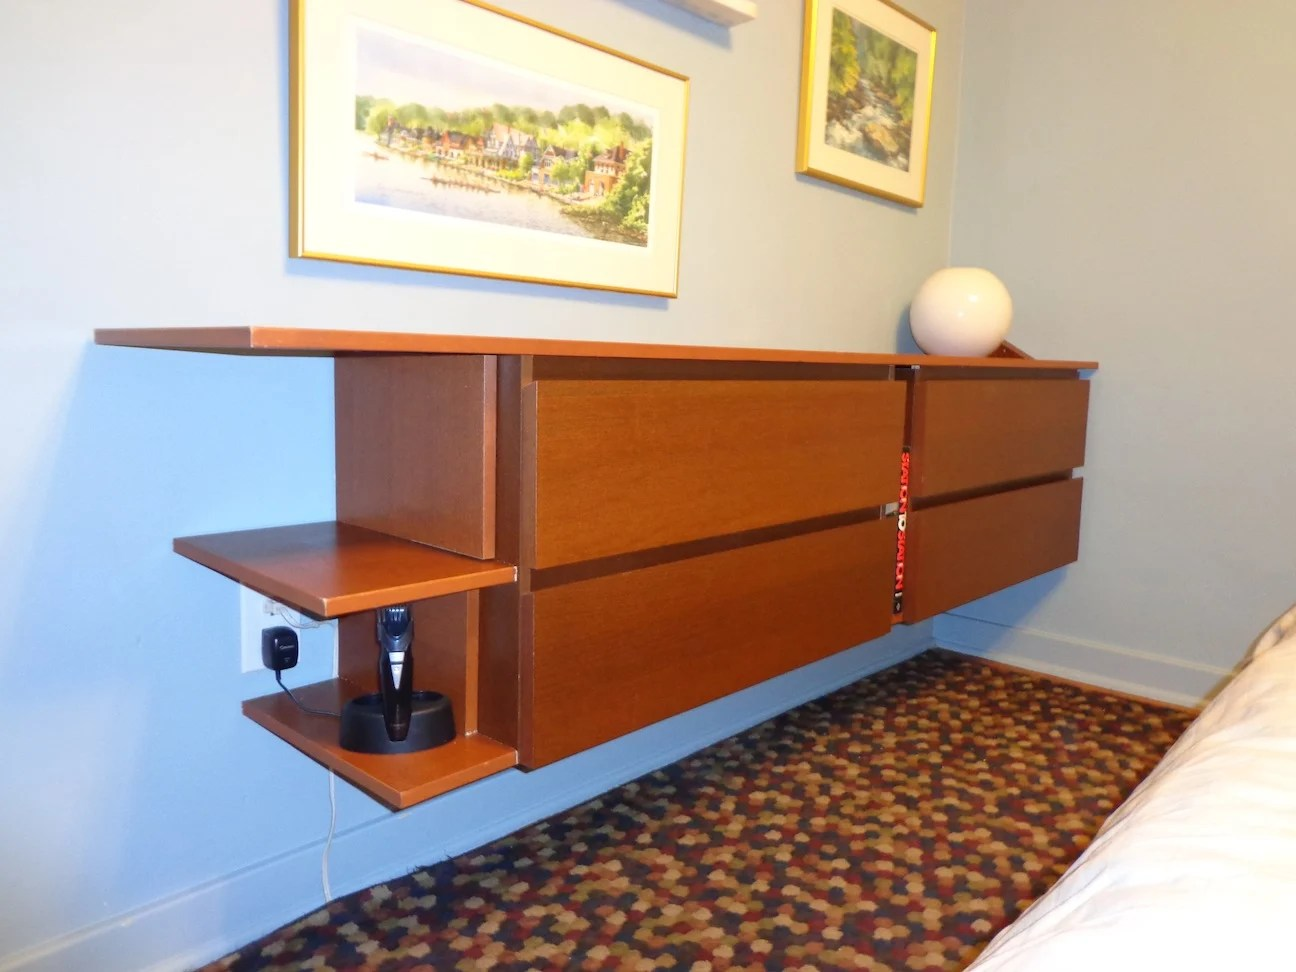 malm dressers become built in ikea hackers. Black Bedroom Furniture Sets. Home Design Ideas